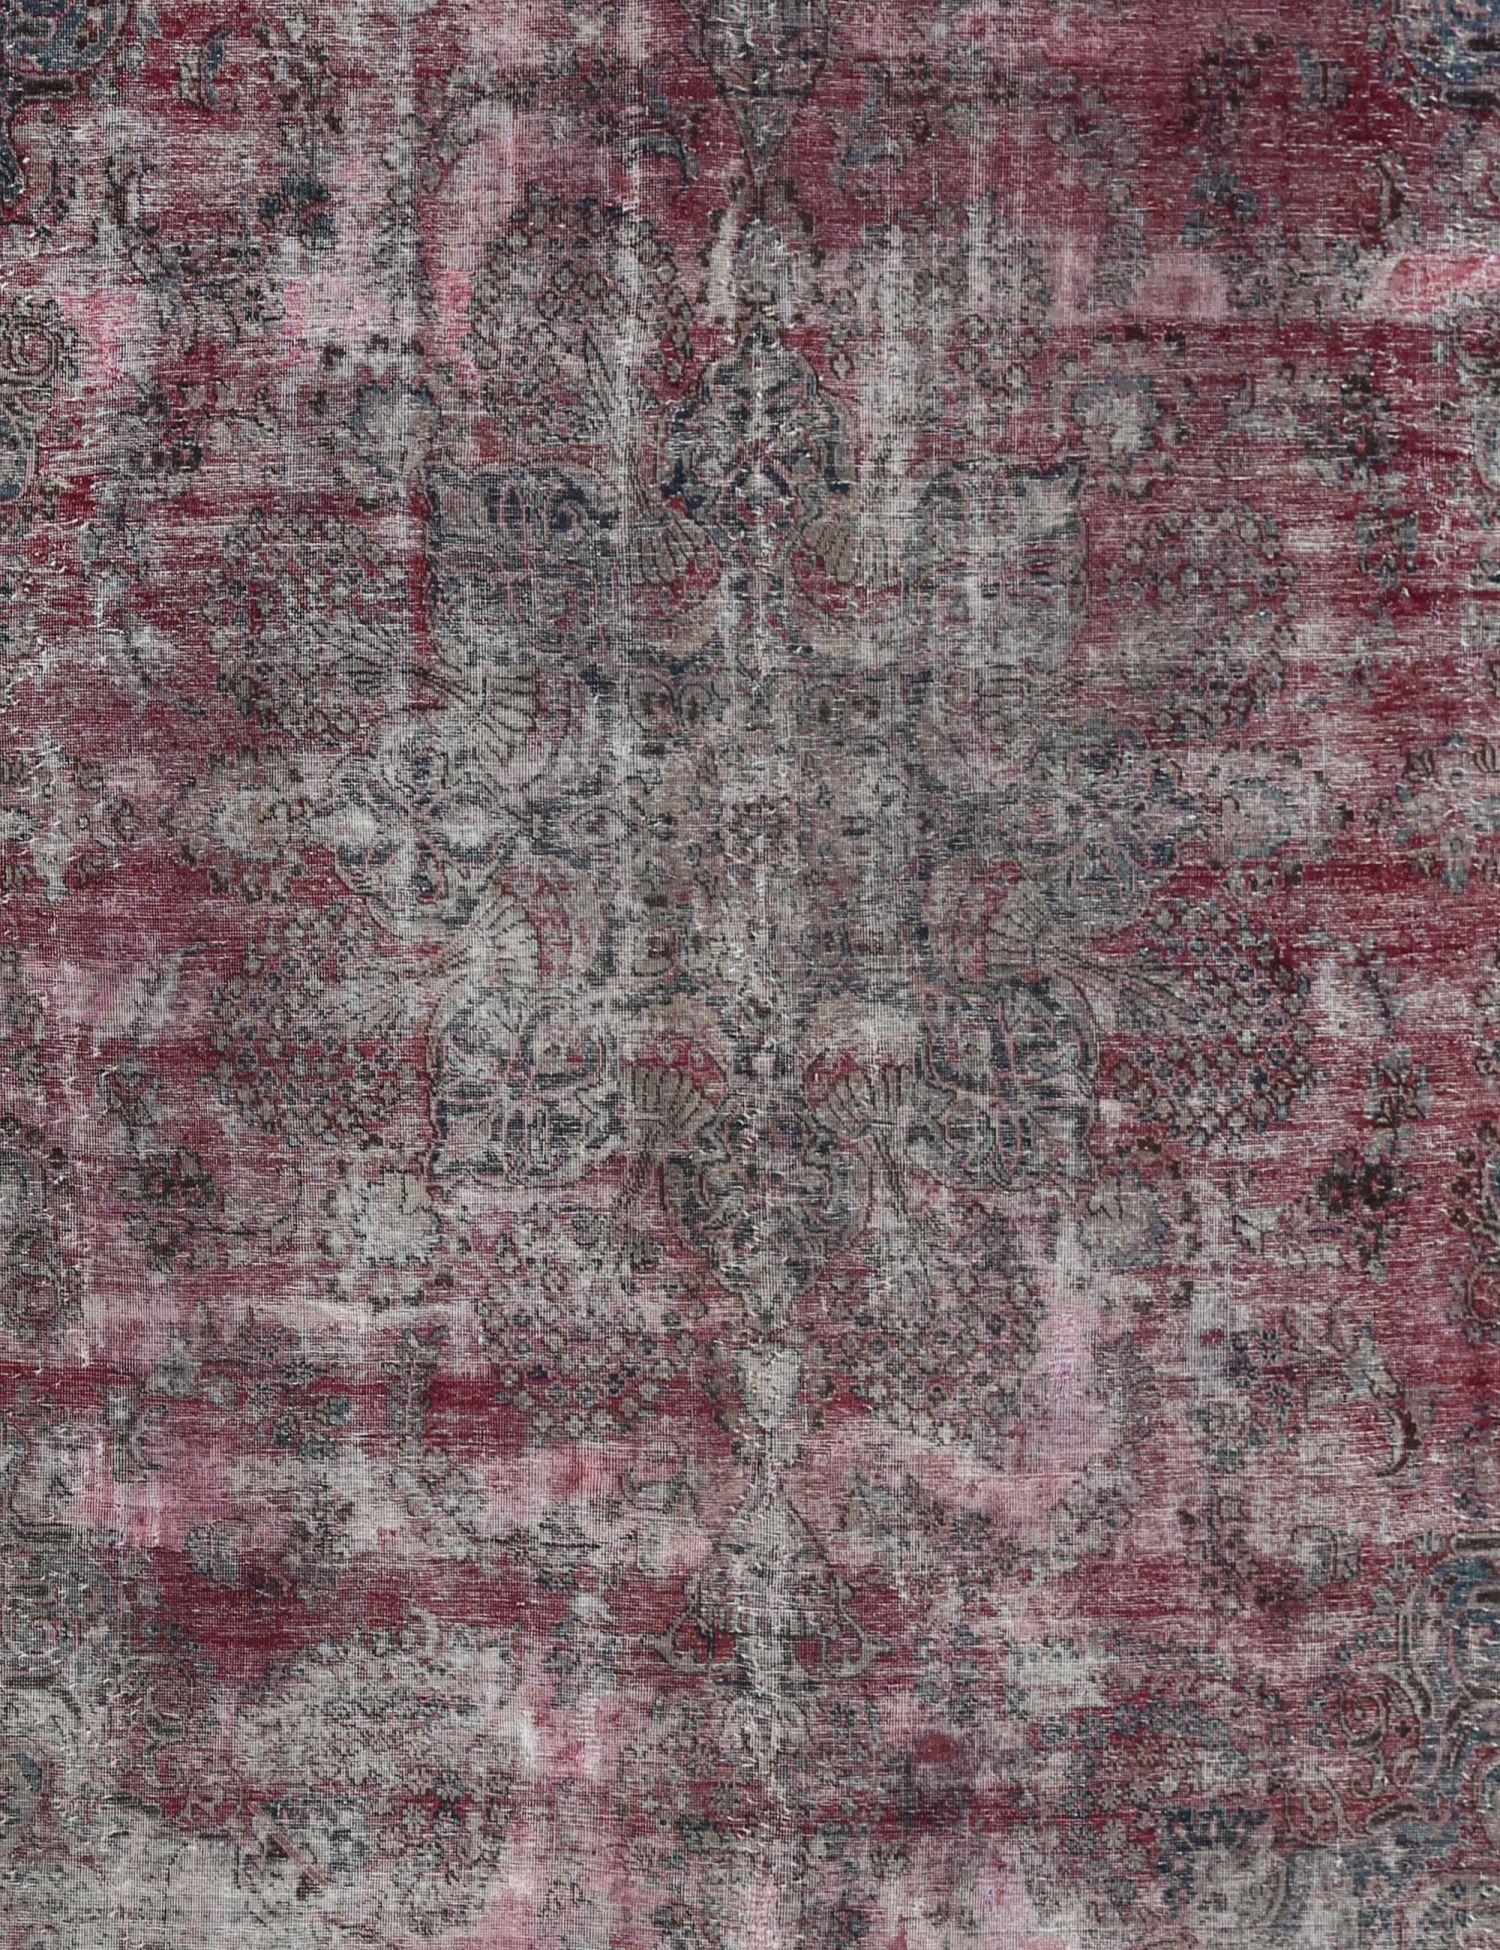 Vintage Carpets  purple <br/>375 x 285 cm